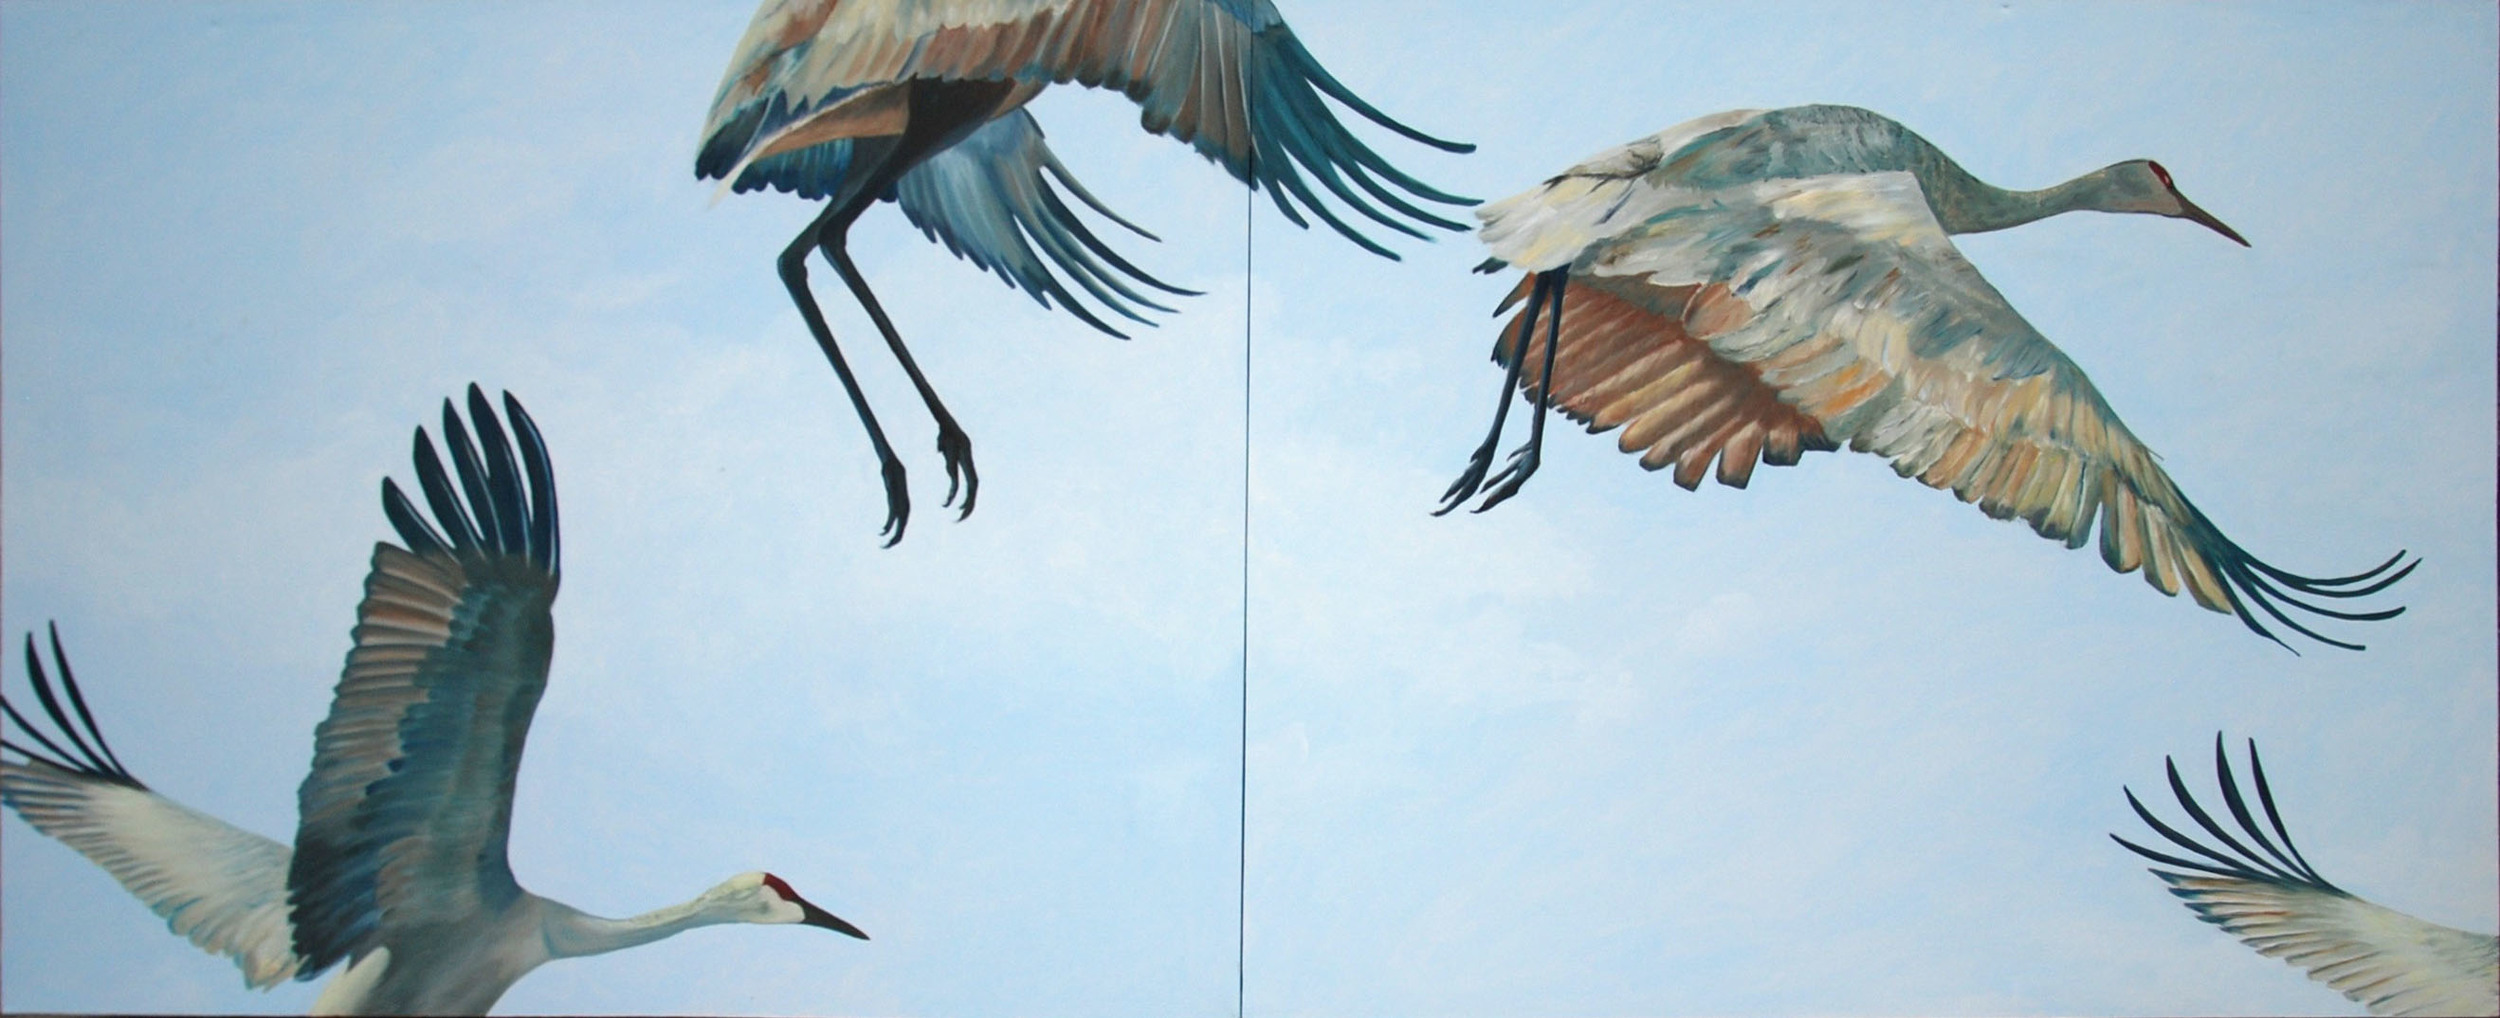 Sandhill Cranes Landing  oil on canvas; 4' x 10' on two canvasses 4' x 5' each; 2013  Purchased by Shands Hospital; in the lobby of the Shands Neonatal Cardio floor